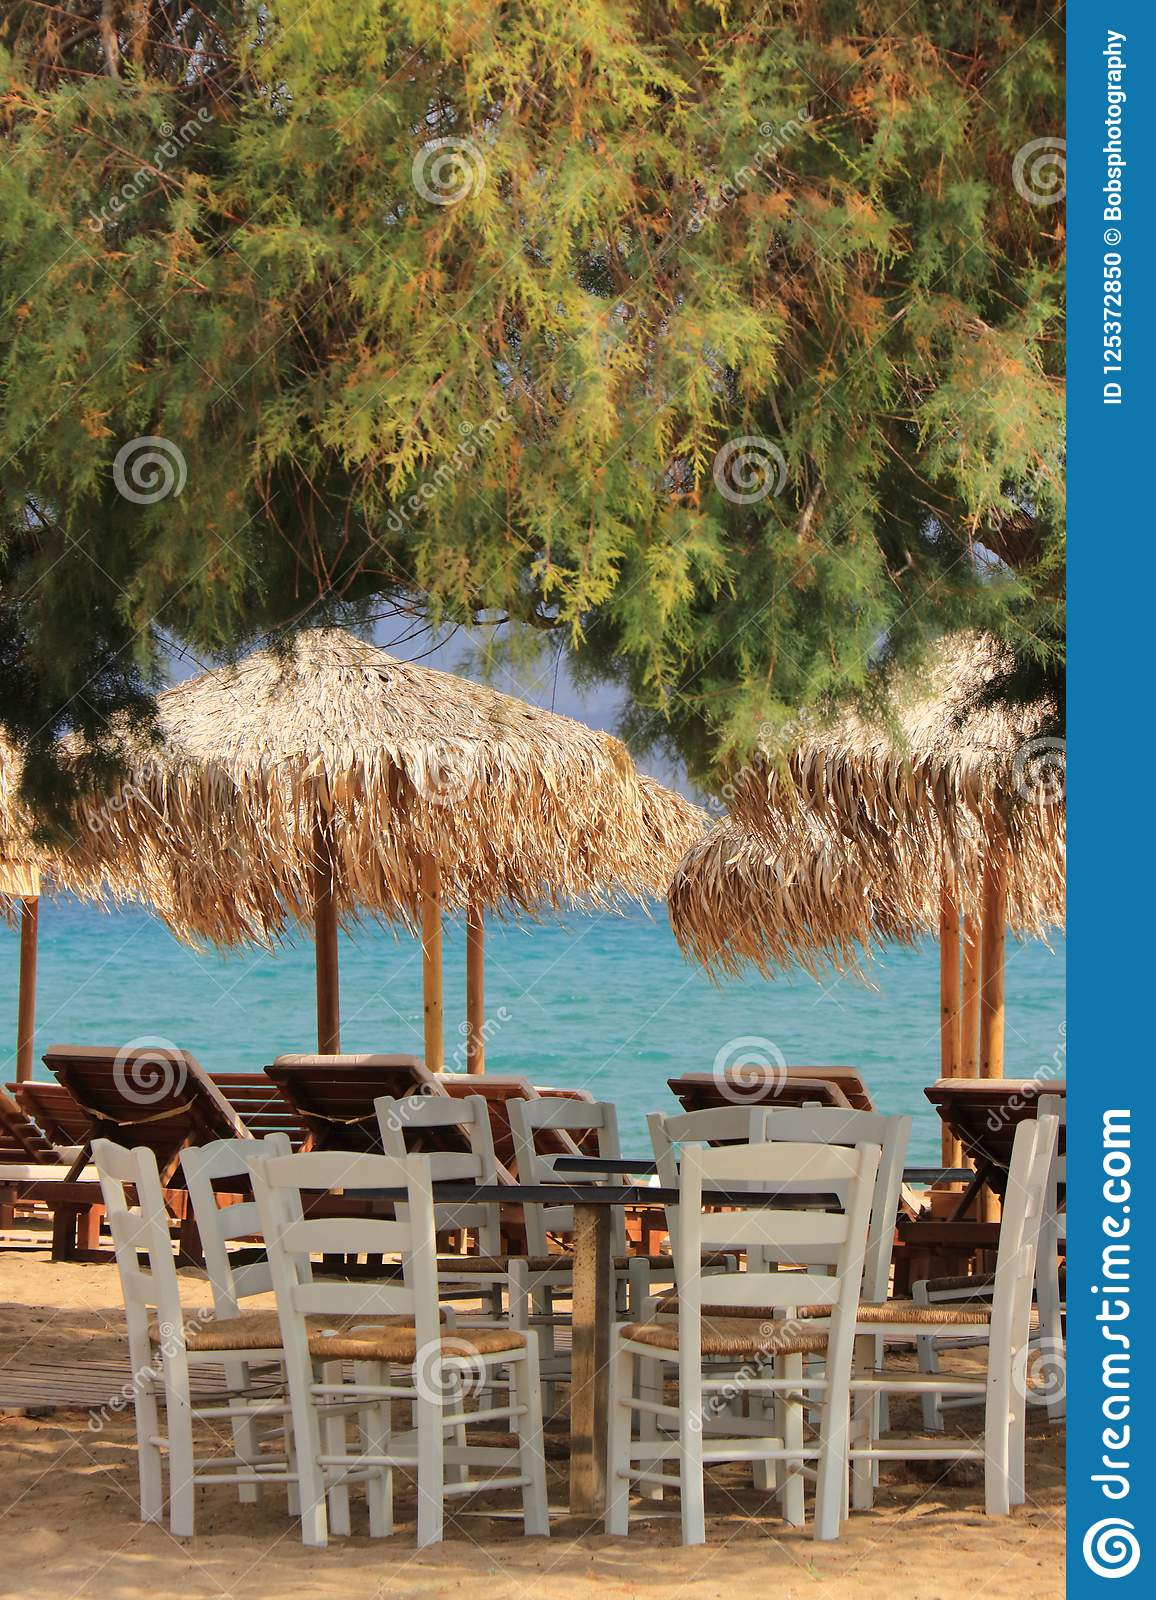 Typical greek scene at the kalives beach with wooden chairs and table